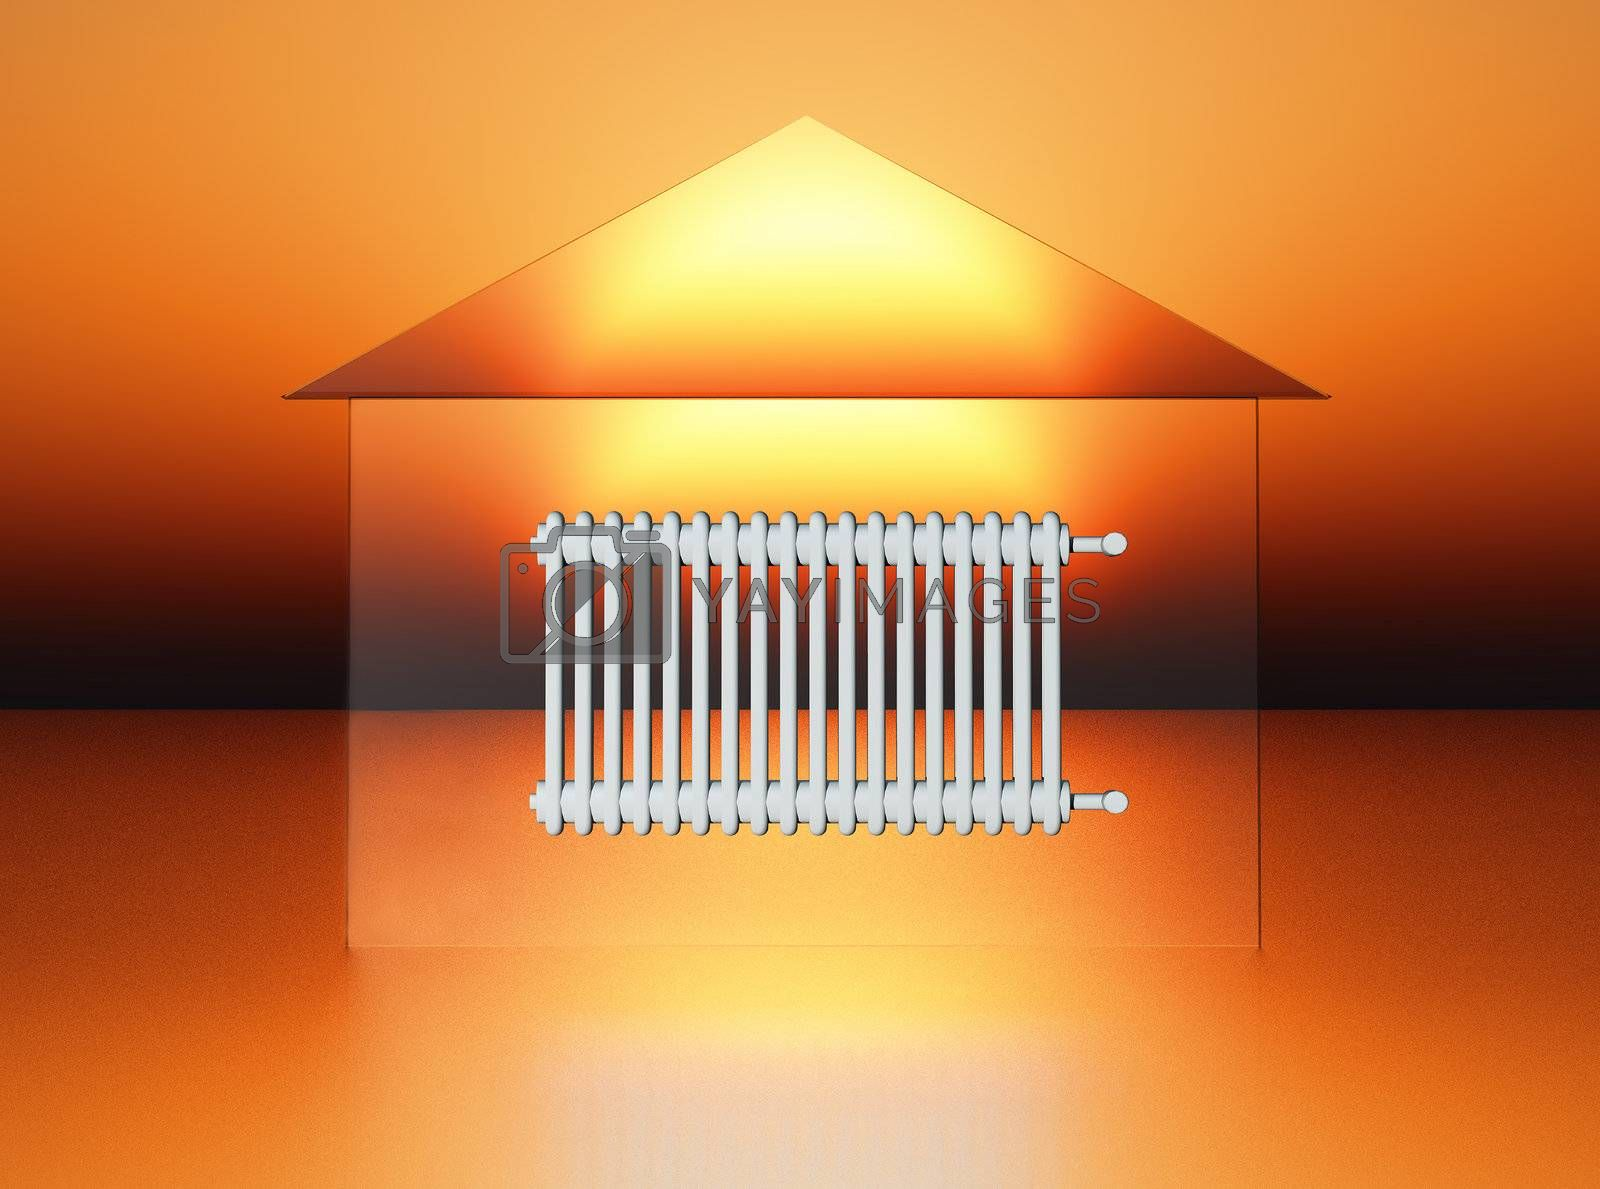 conceptual view of domestic heating